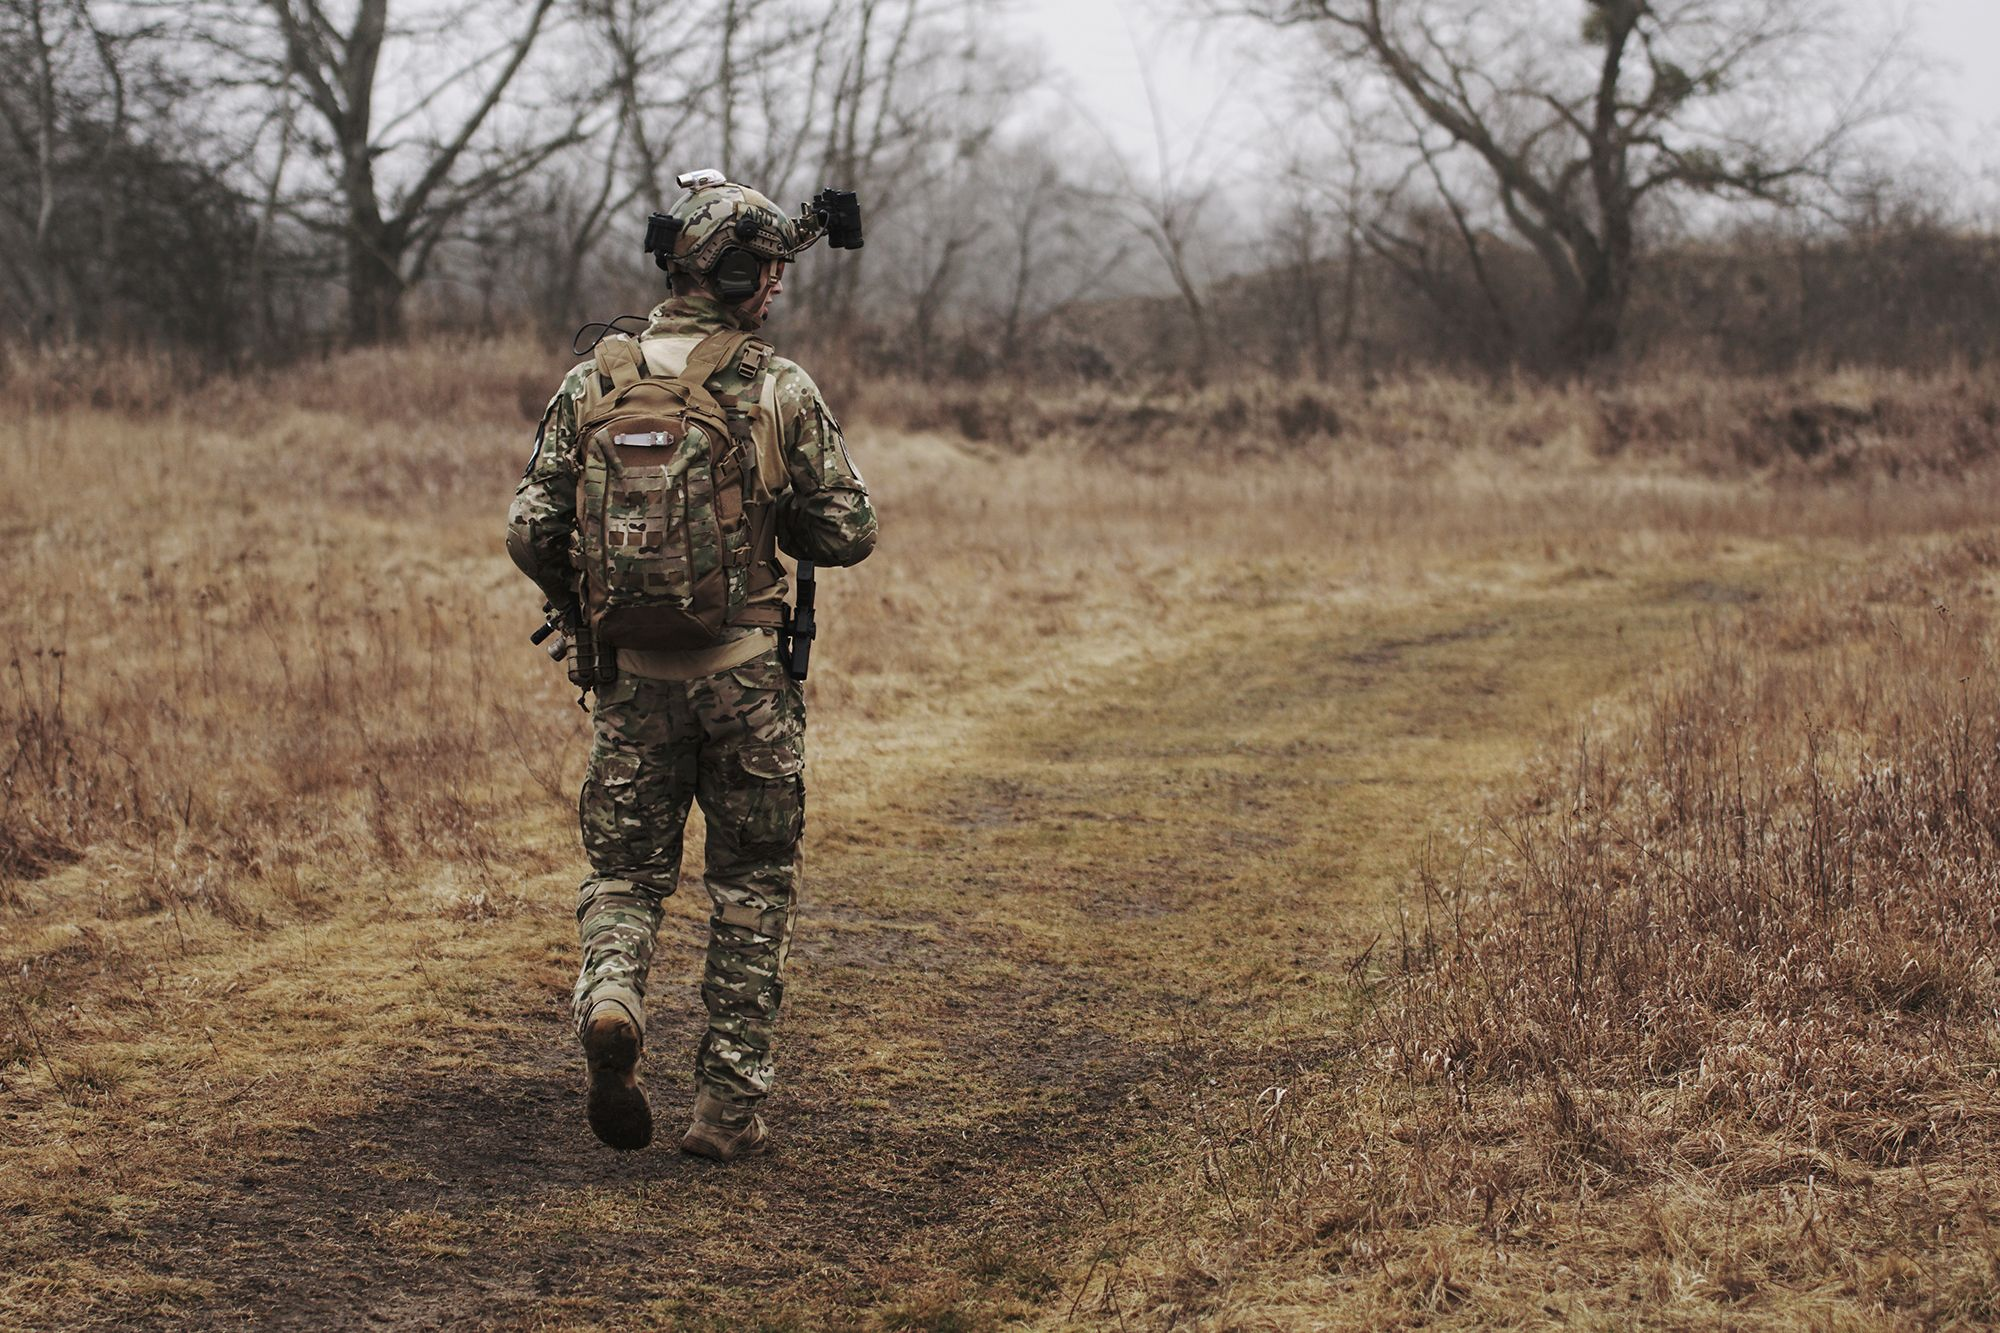 A U.S. Army solider on a patrol